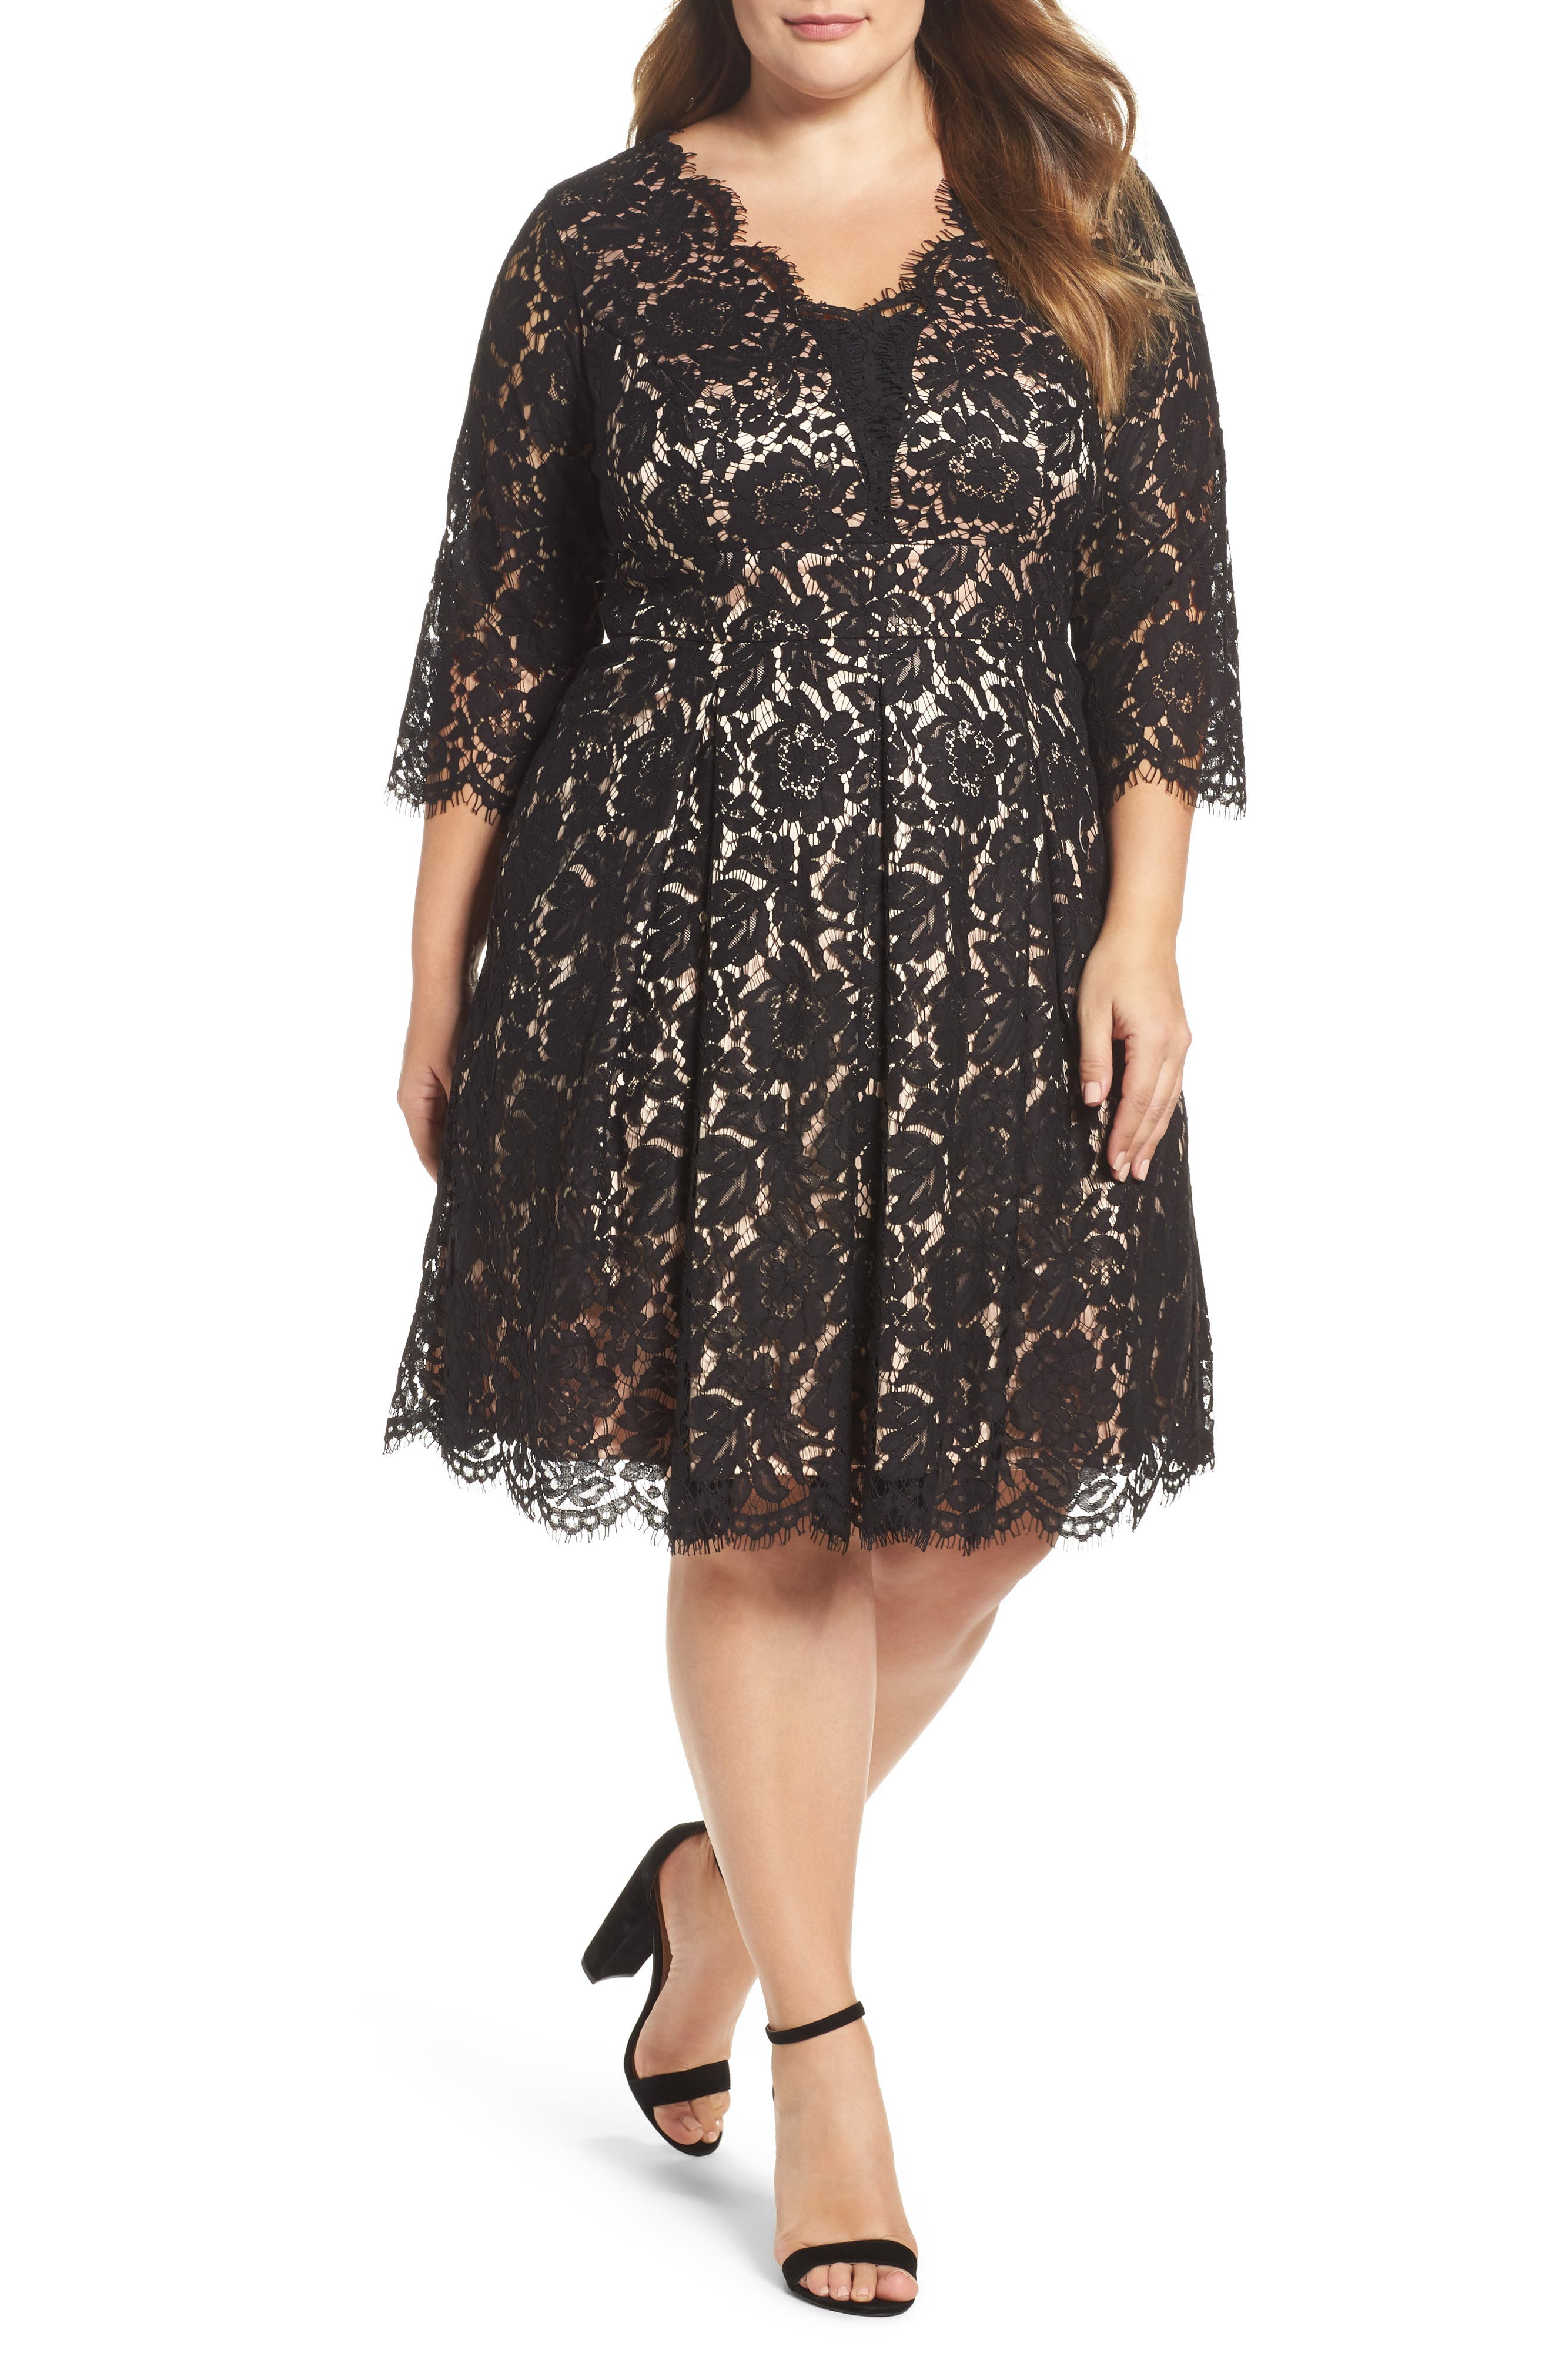 Alternate Image 1 Selected - Eliza J Lace Fit & Flare Dress (Plus Size)